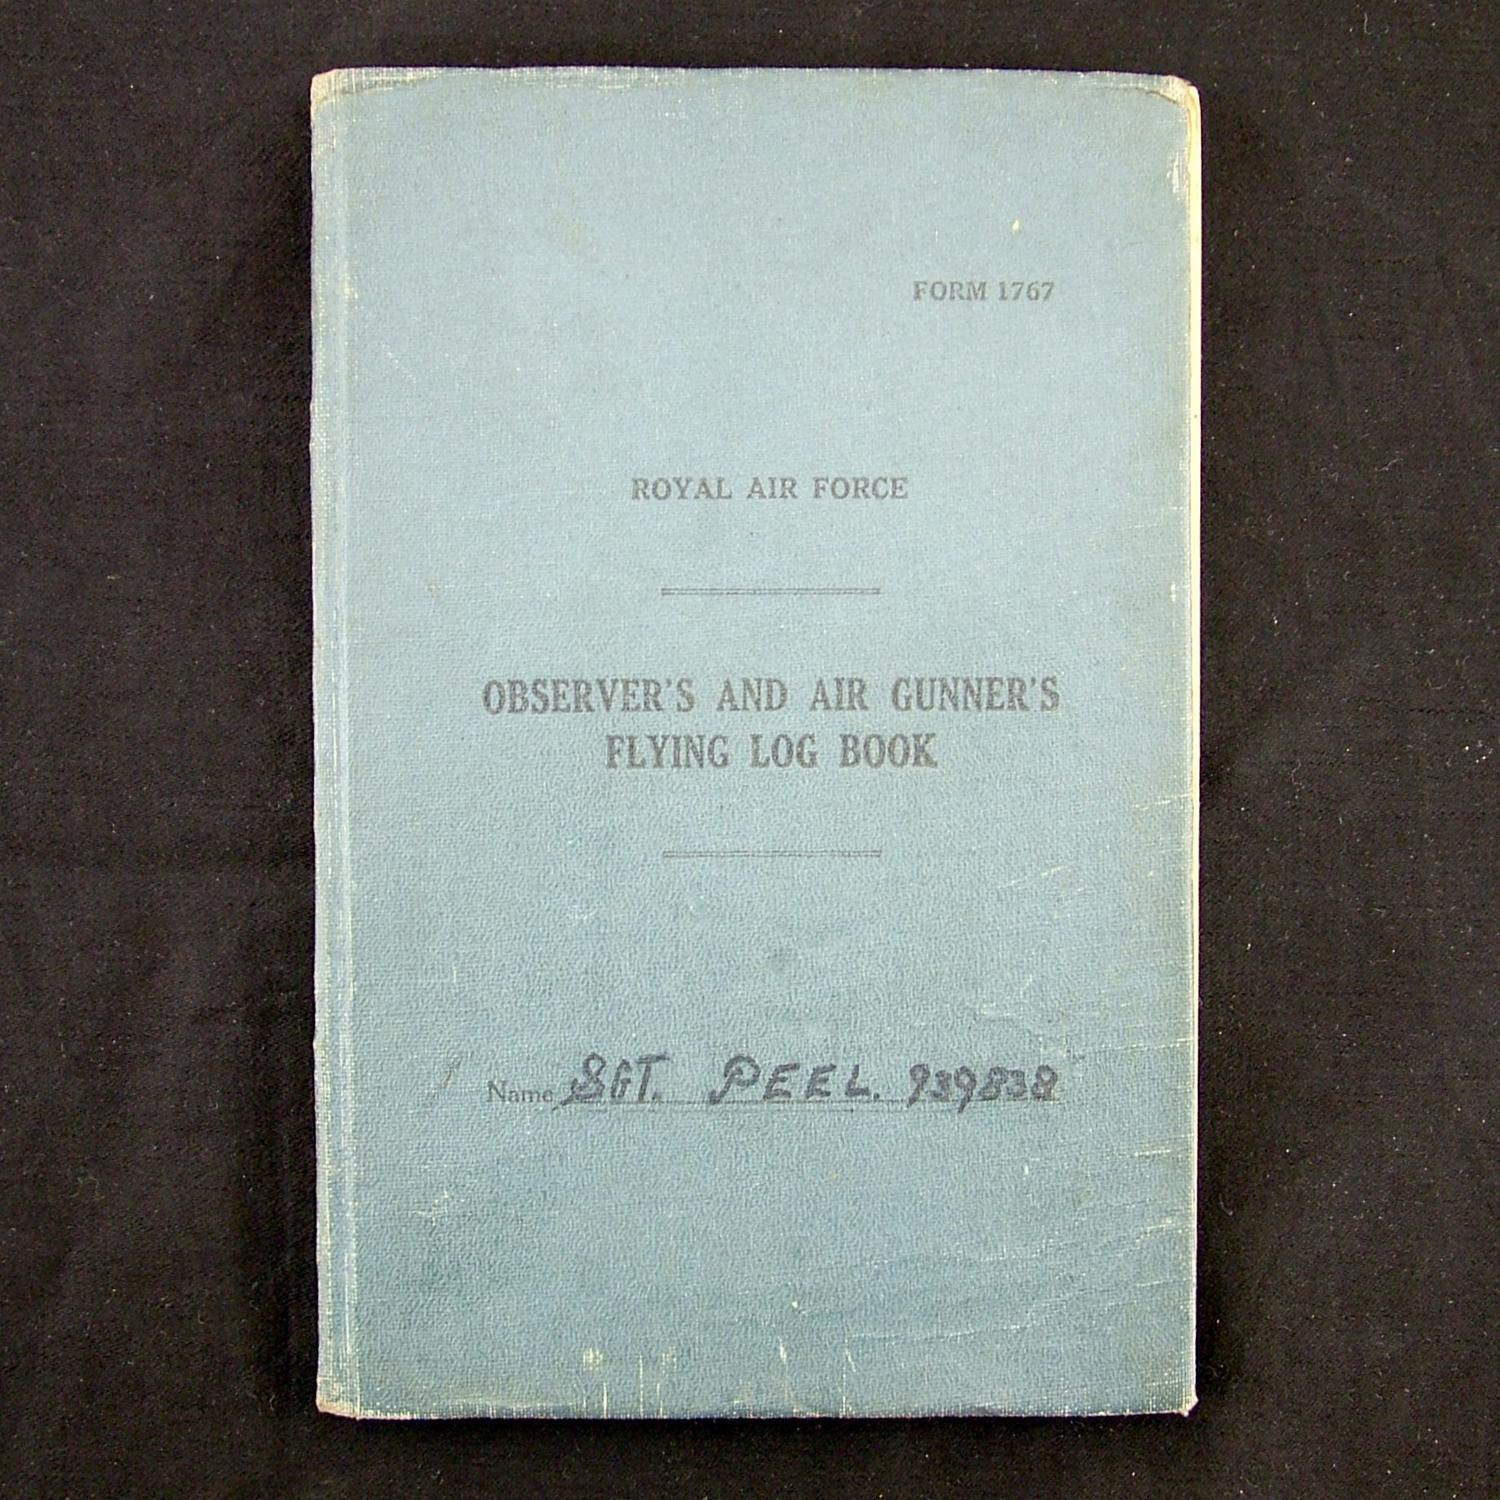 RAF air gunner log book, 405 Squadron